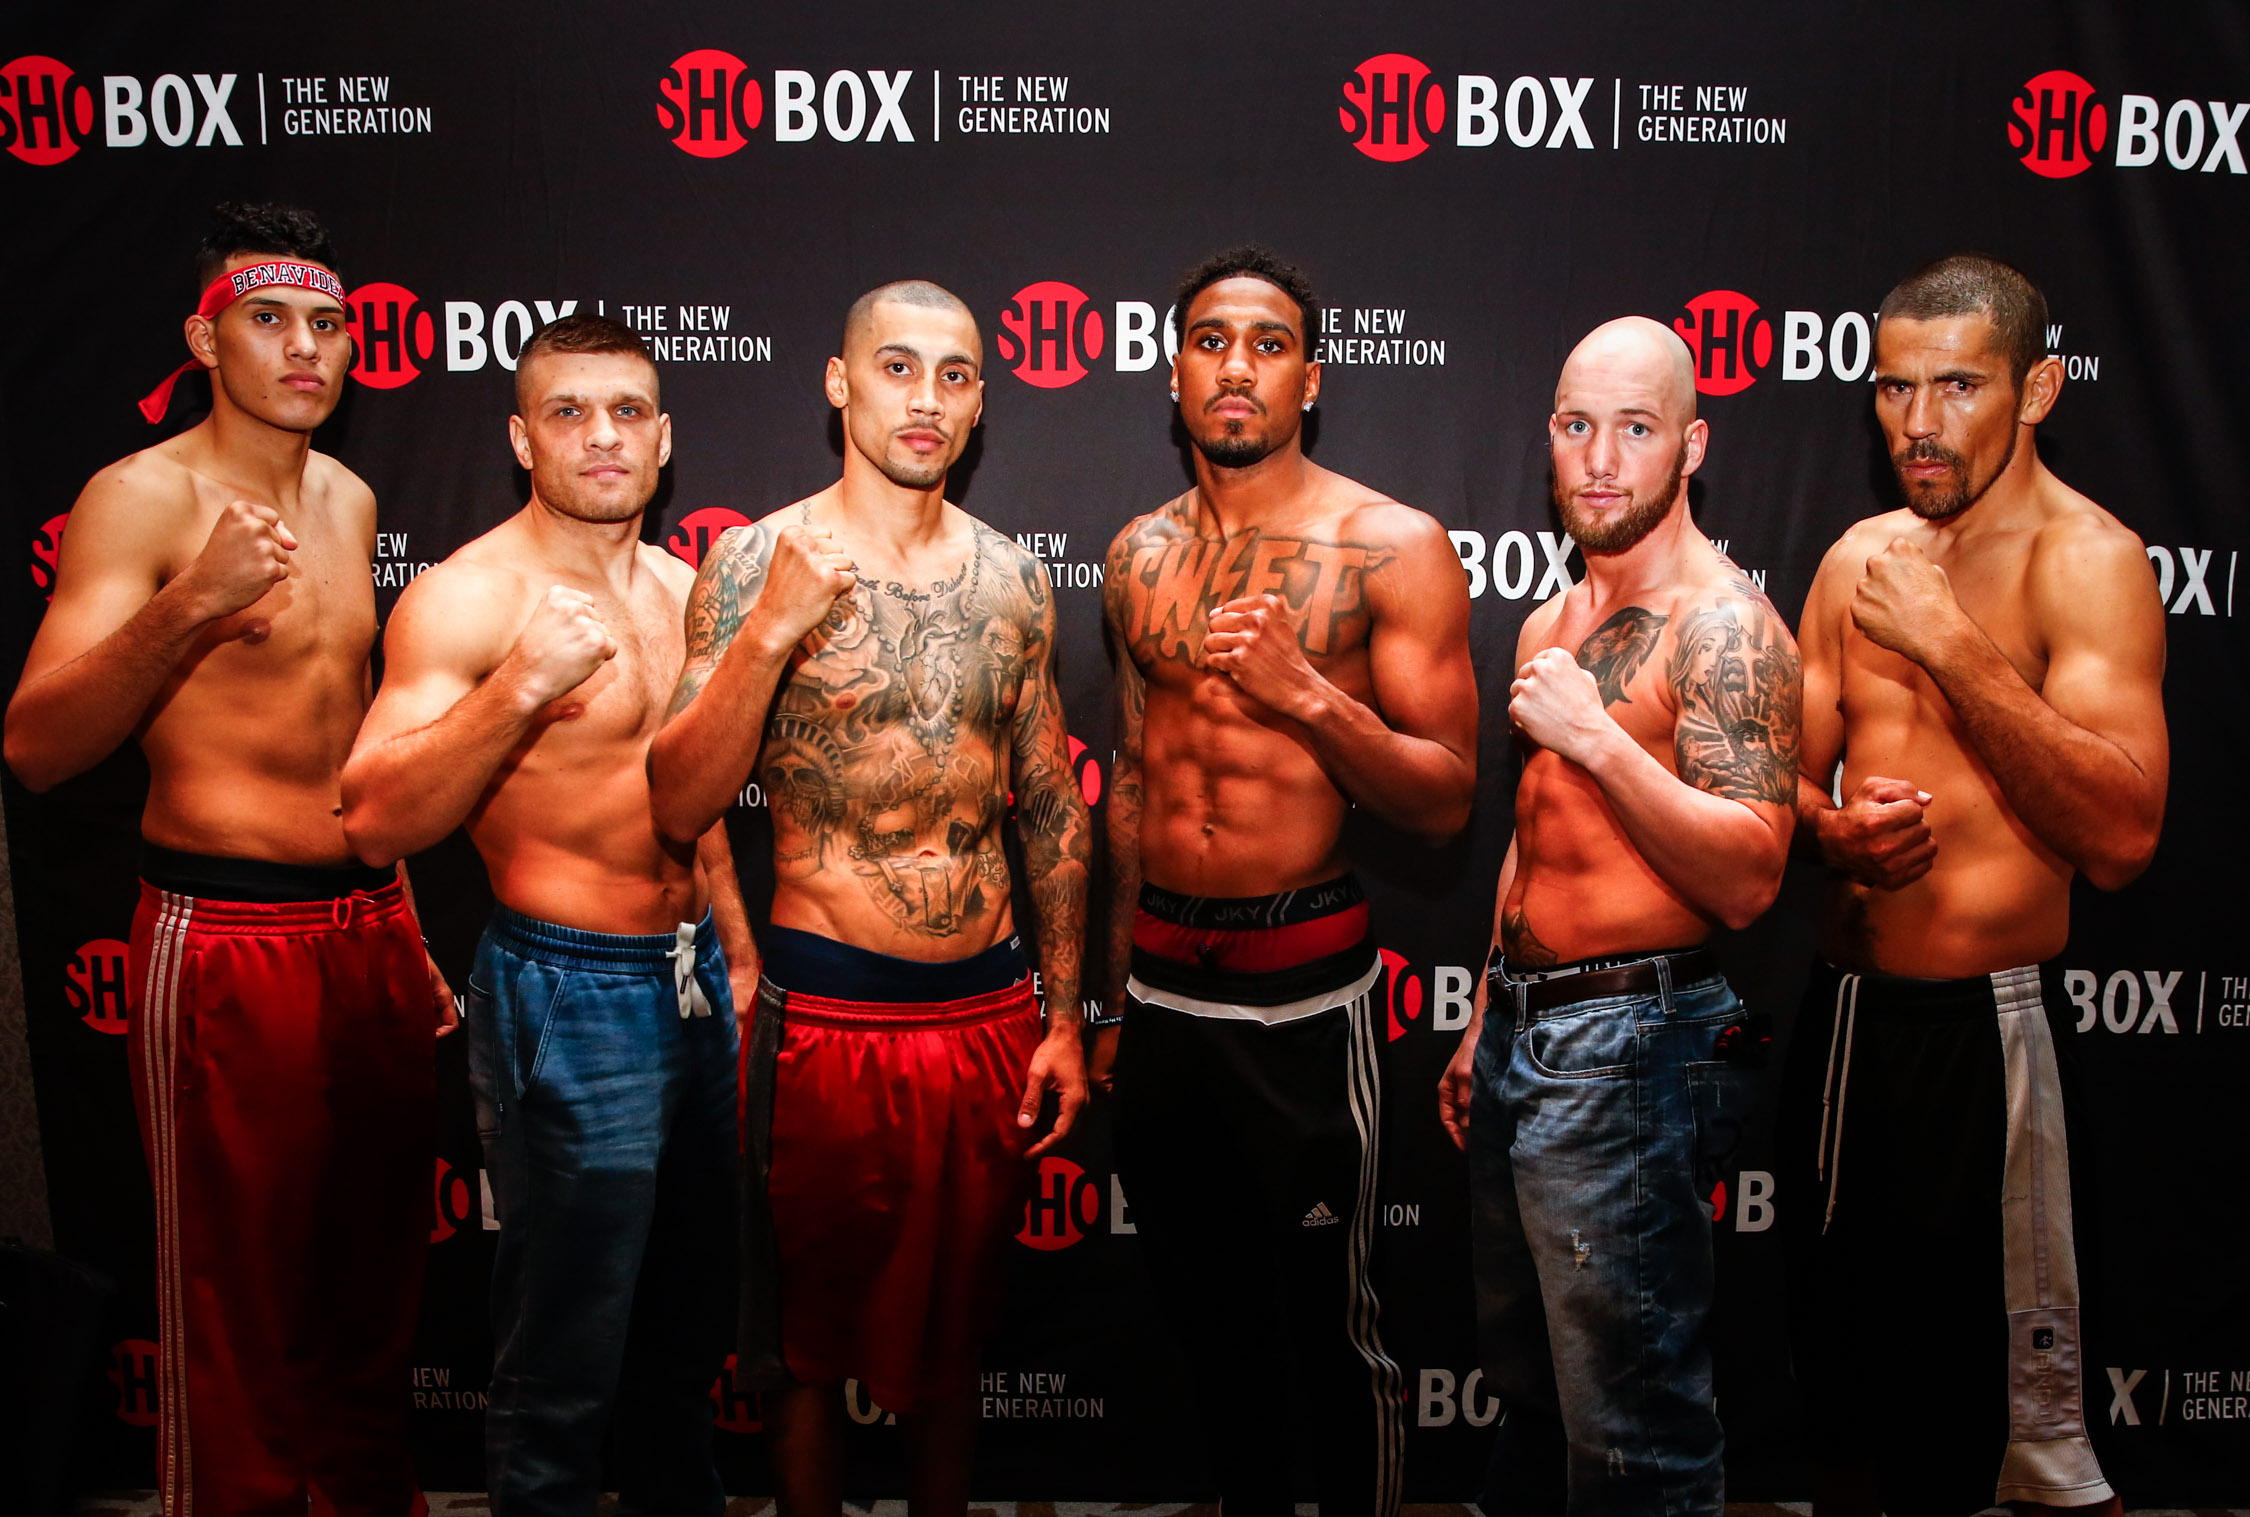 LR_SHOBOX-ALL FIGHTERS-5447